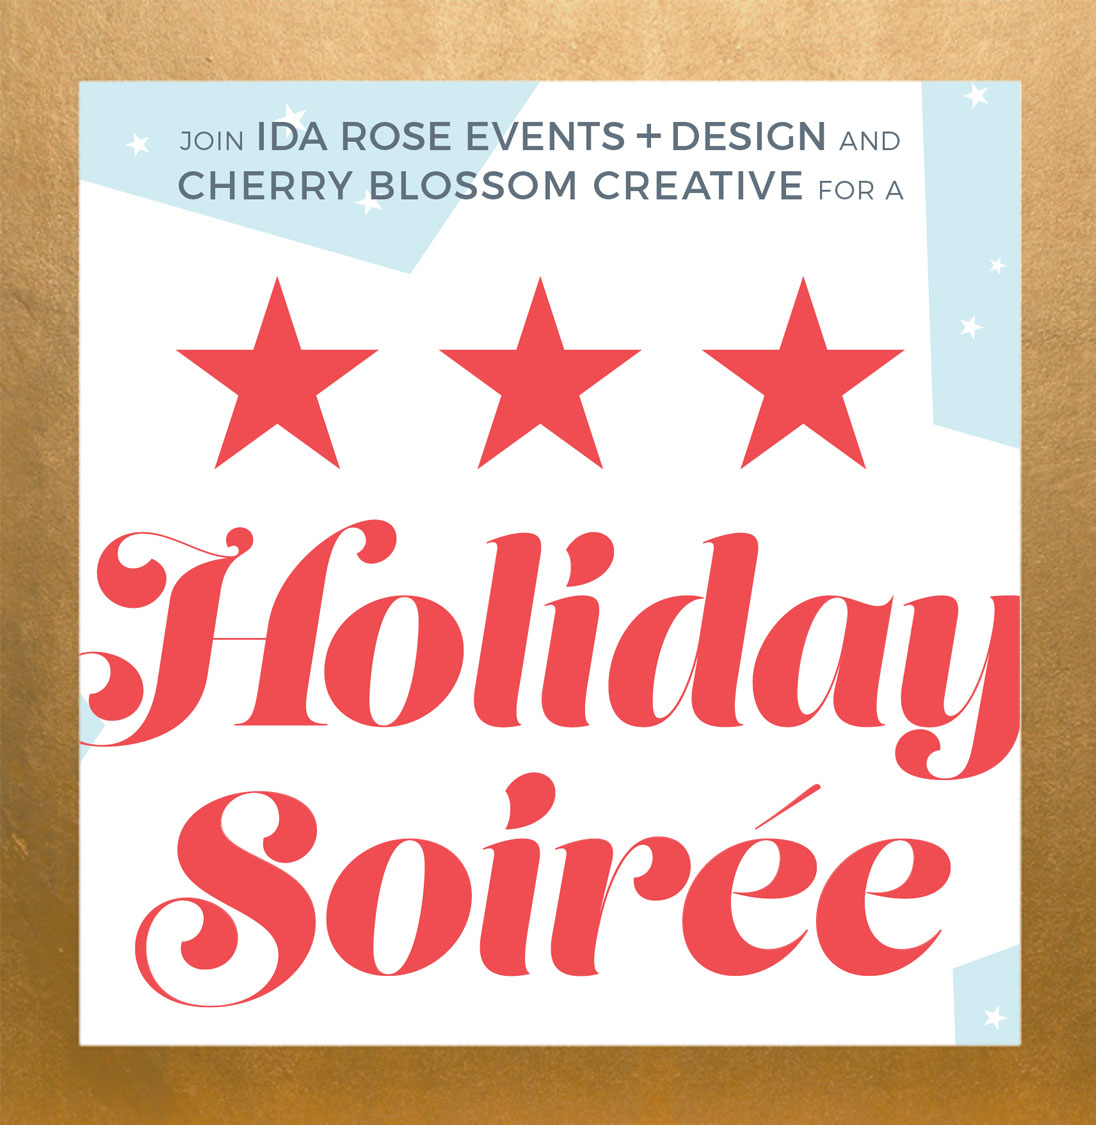 Cherry Blossom Creative Holiday Soiree